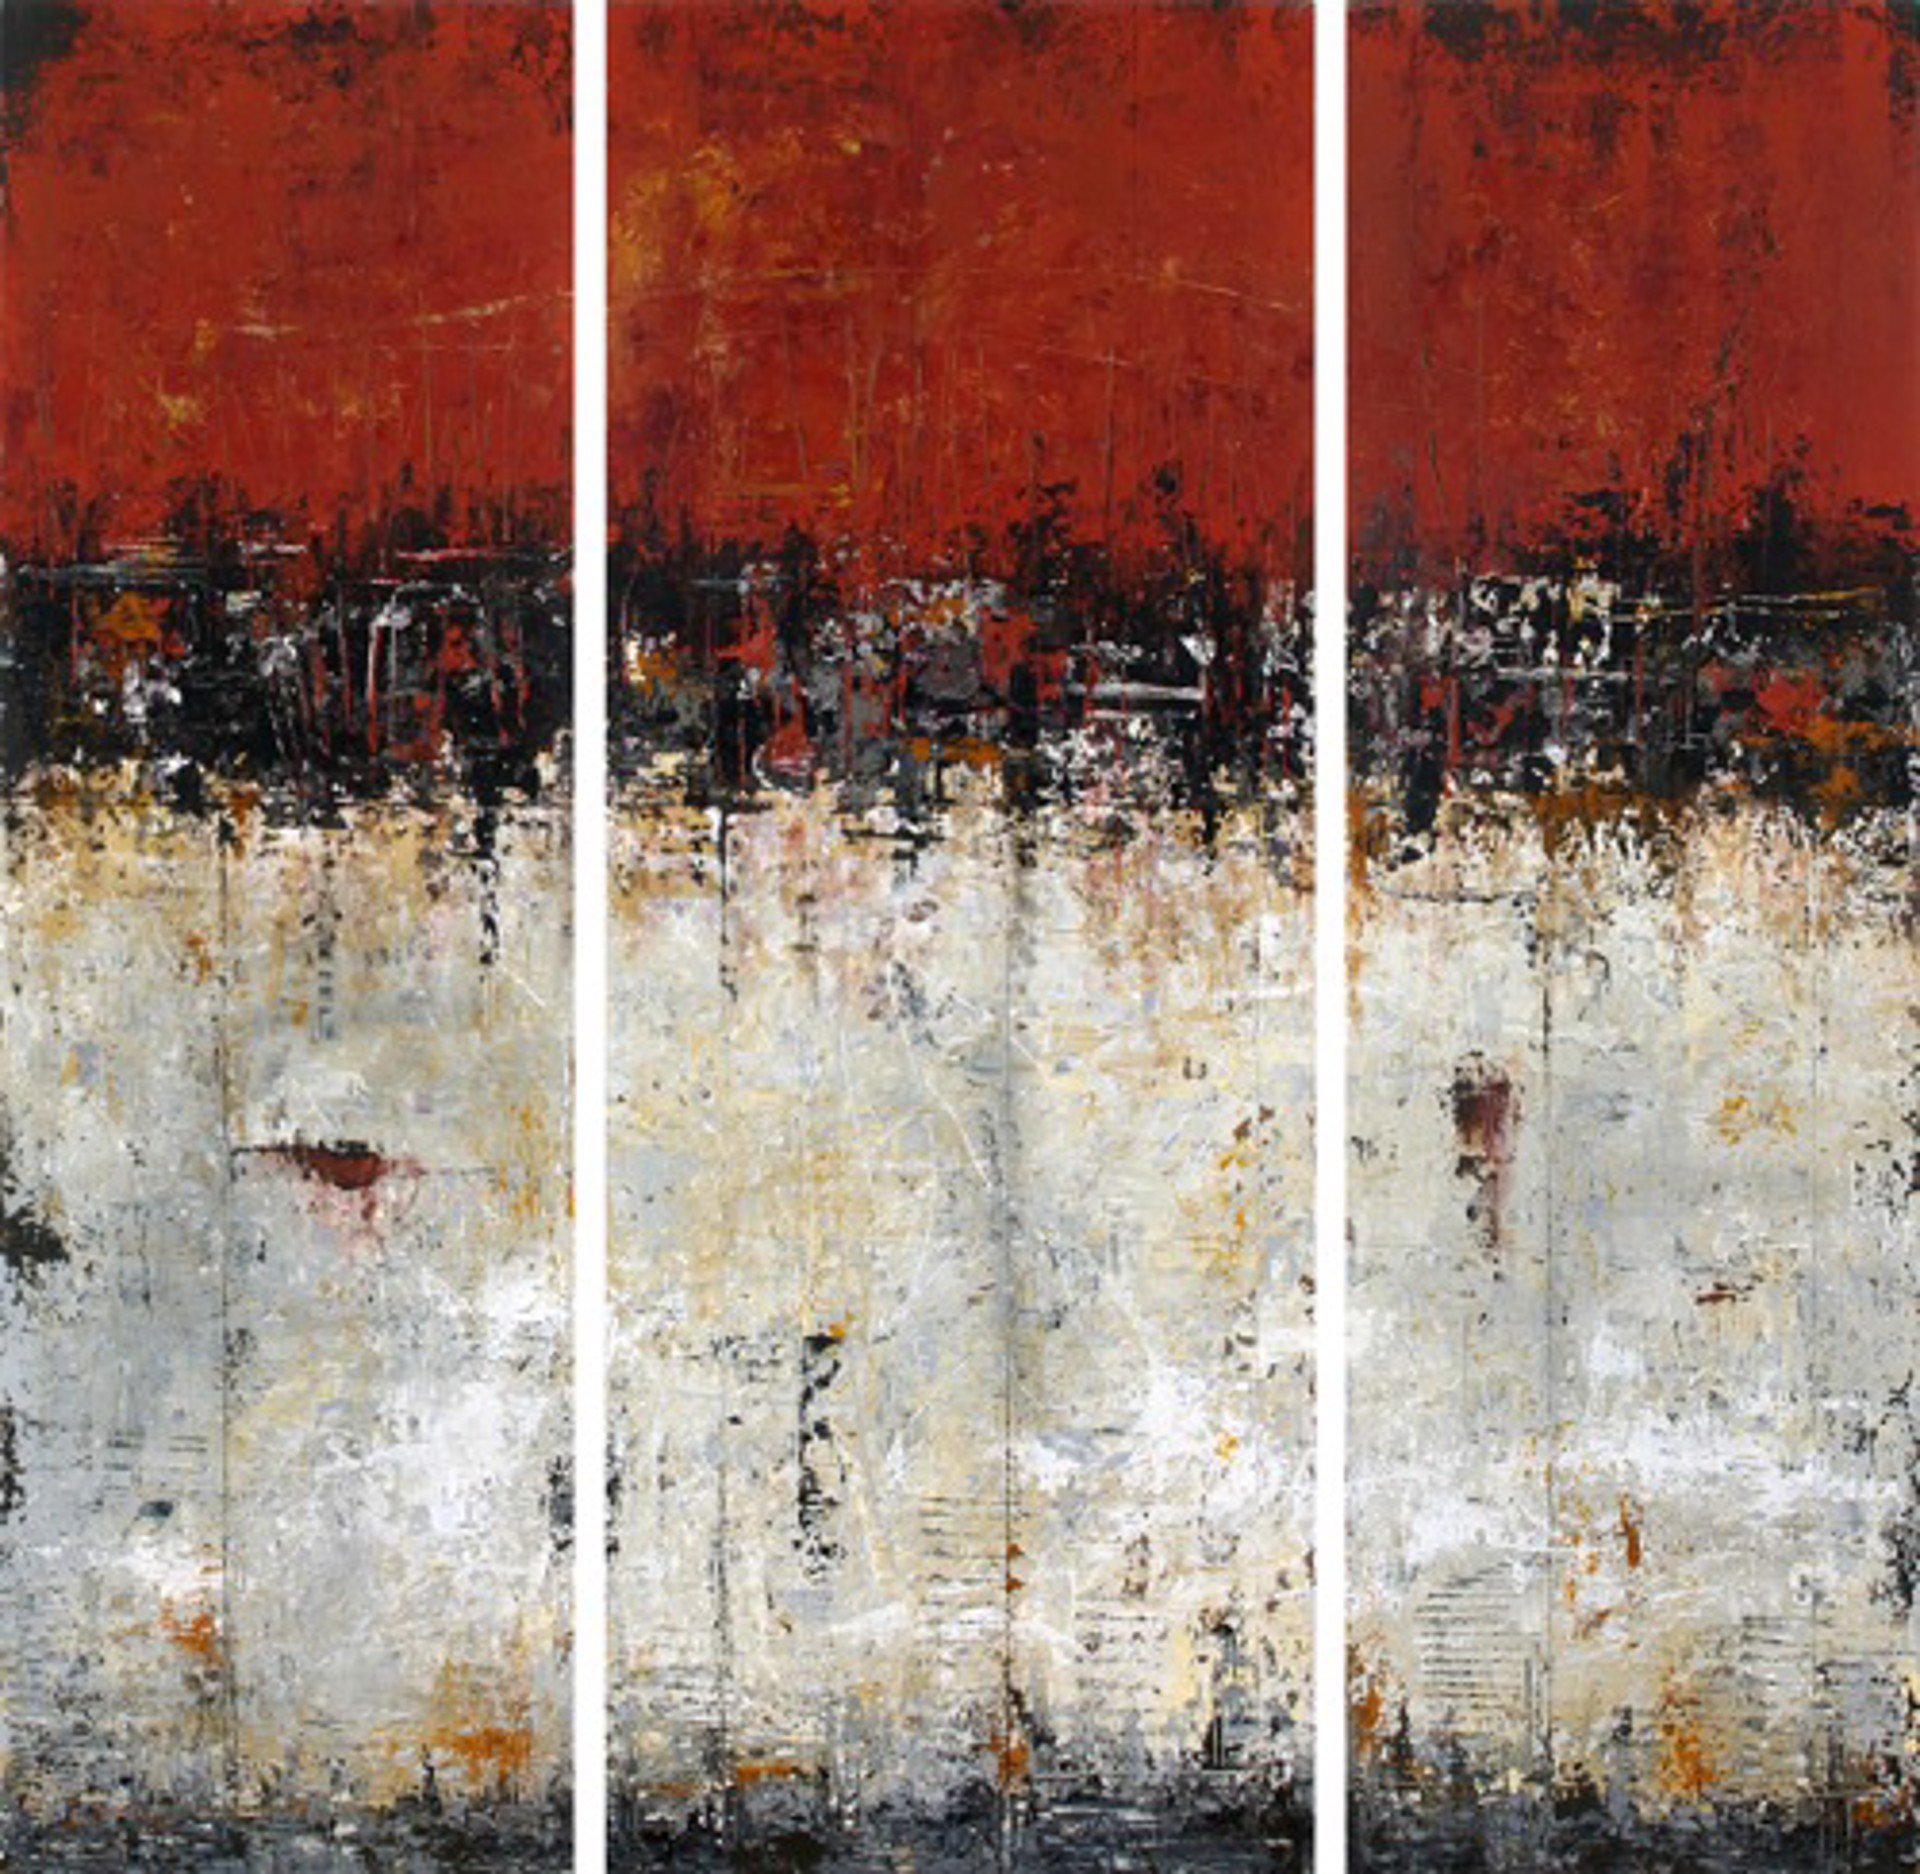 Red Wall for Frida - triptych by Patricia Oblack